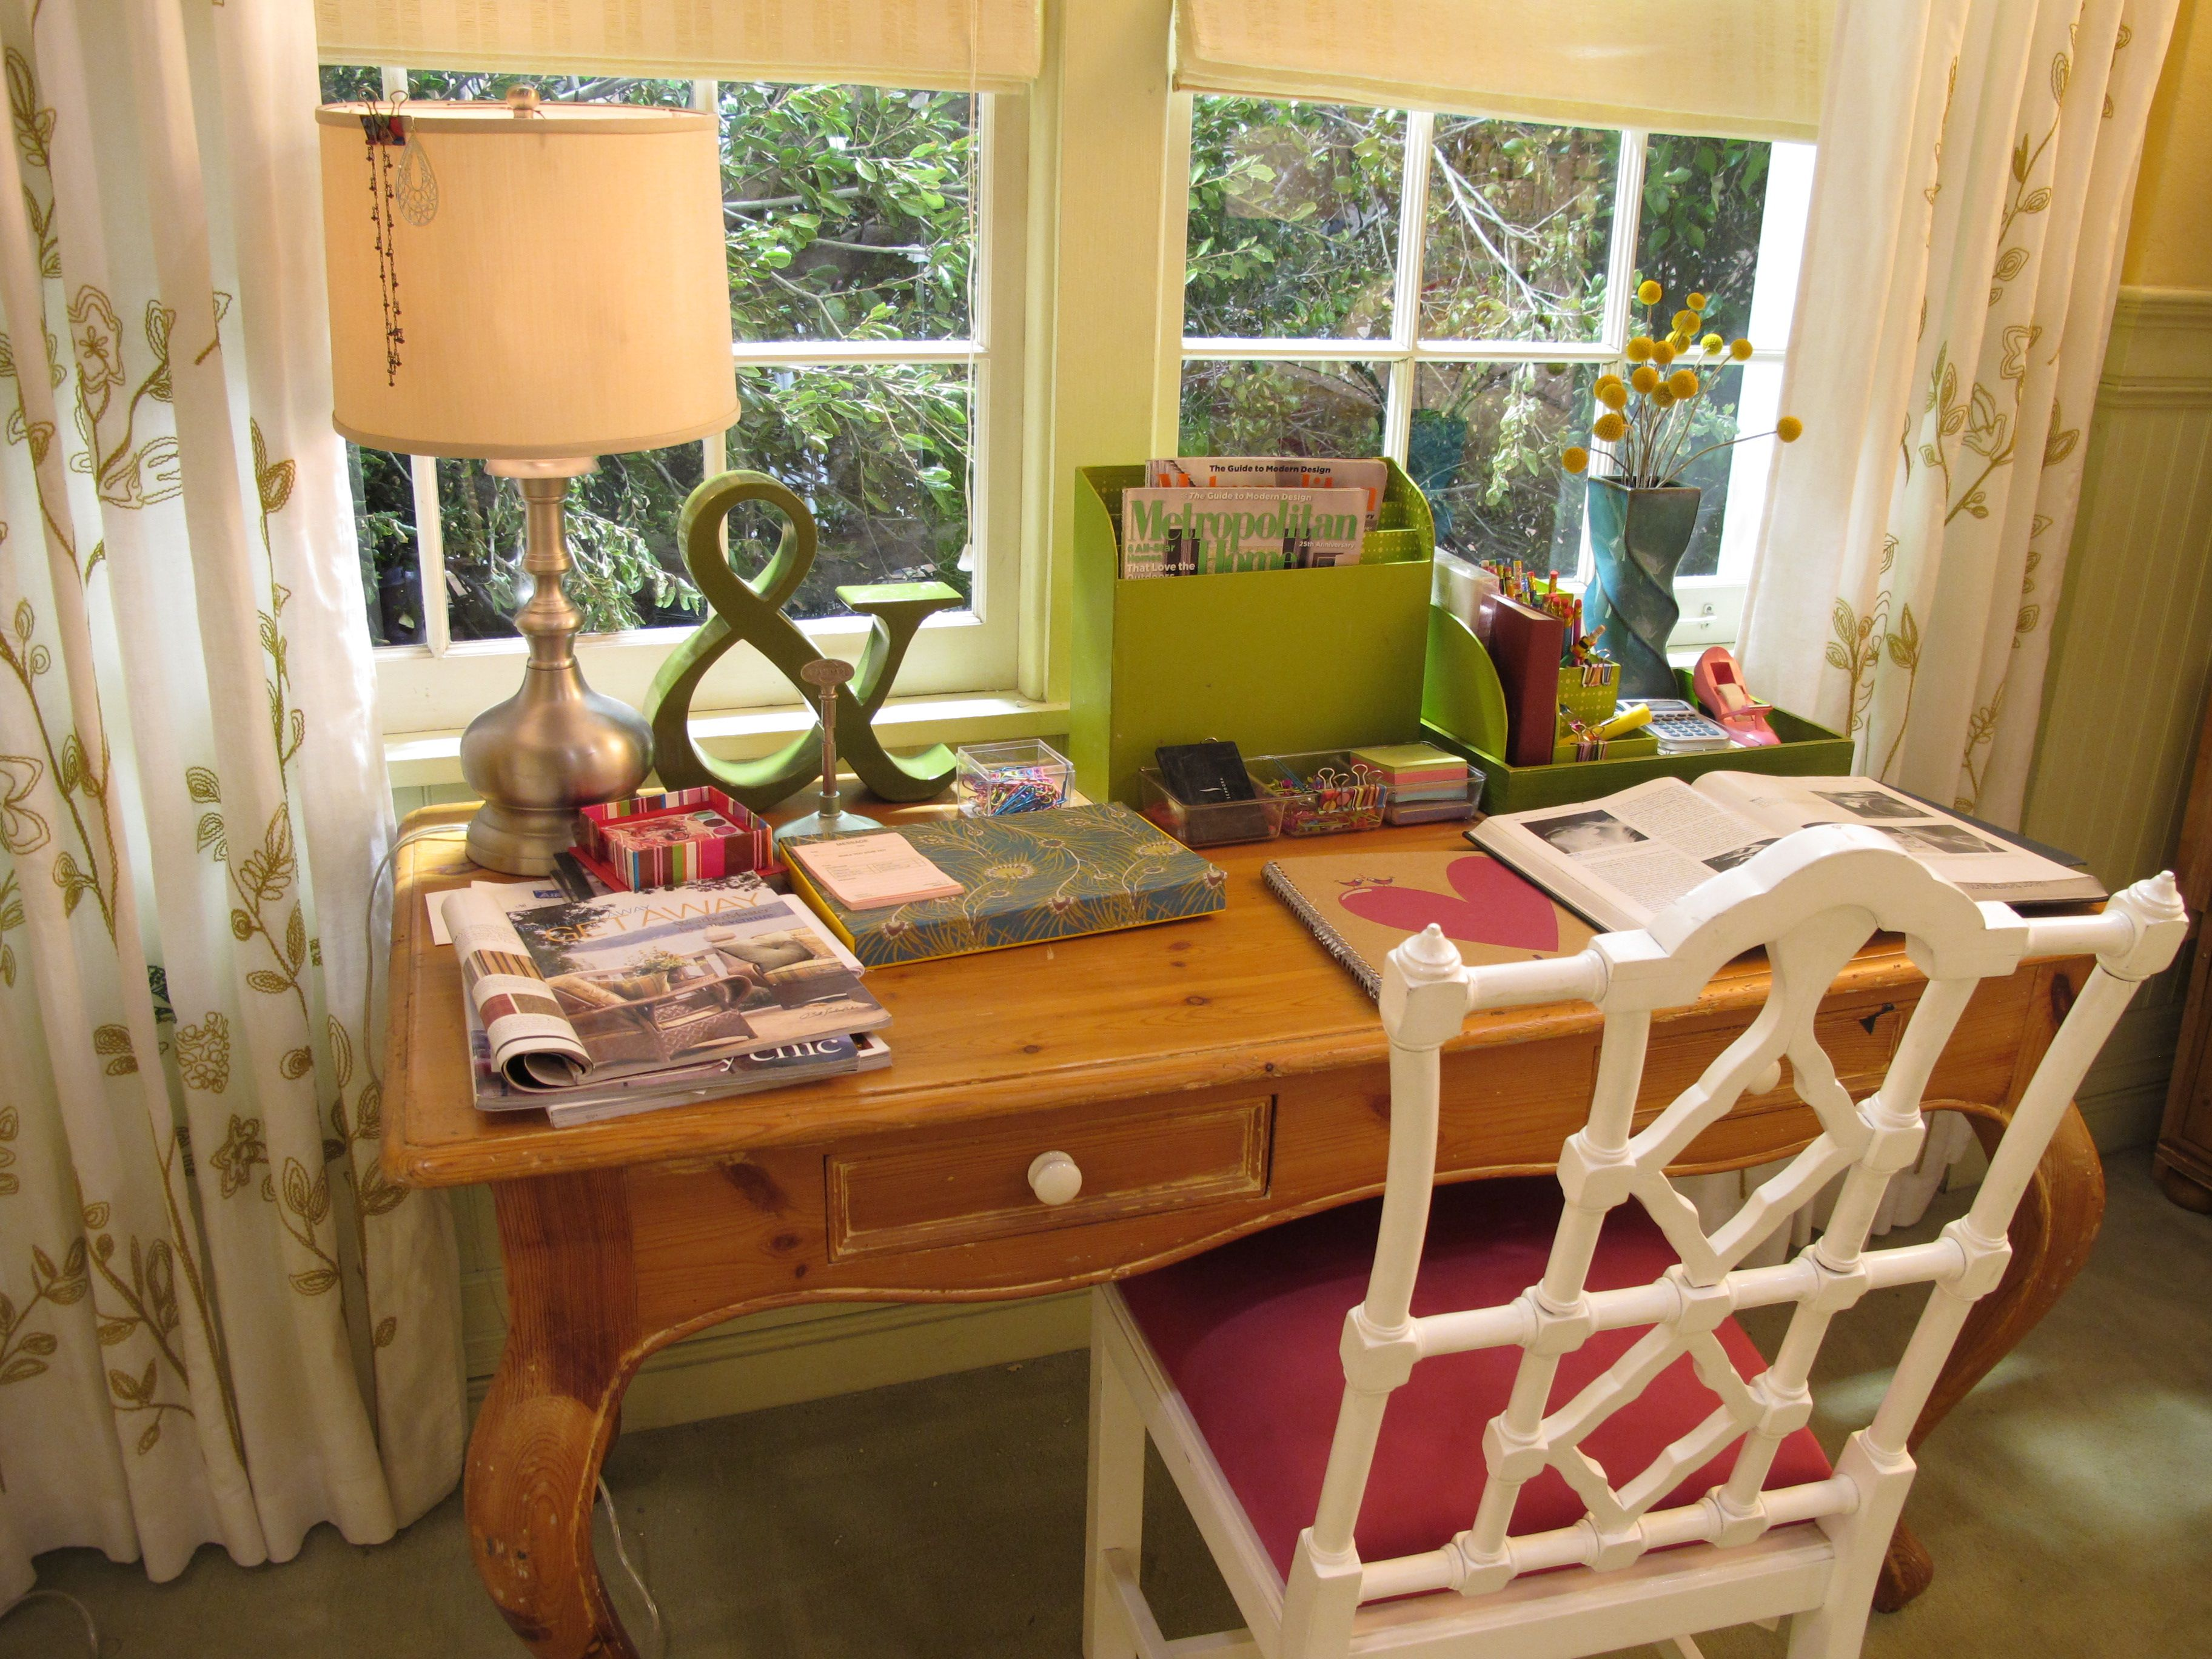 What A Fun Desk! The Ampersand Is So Cute And The White